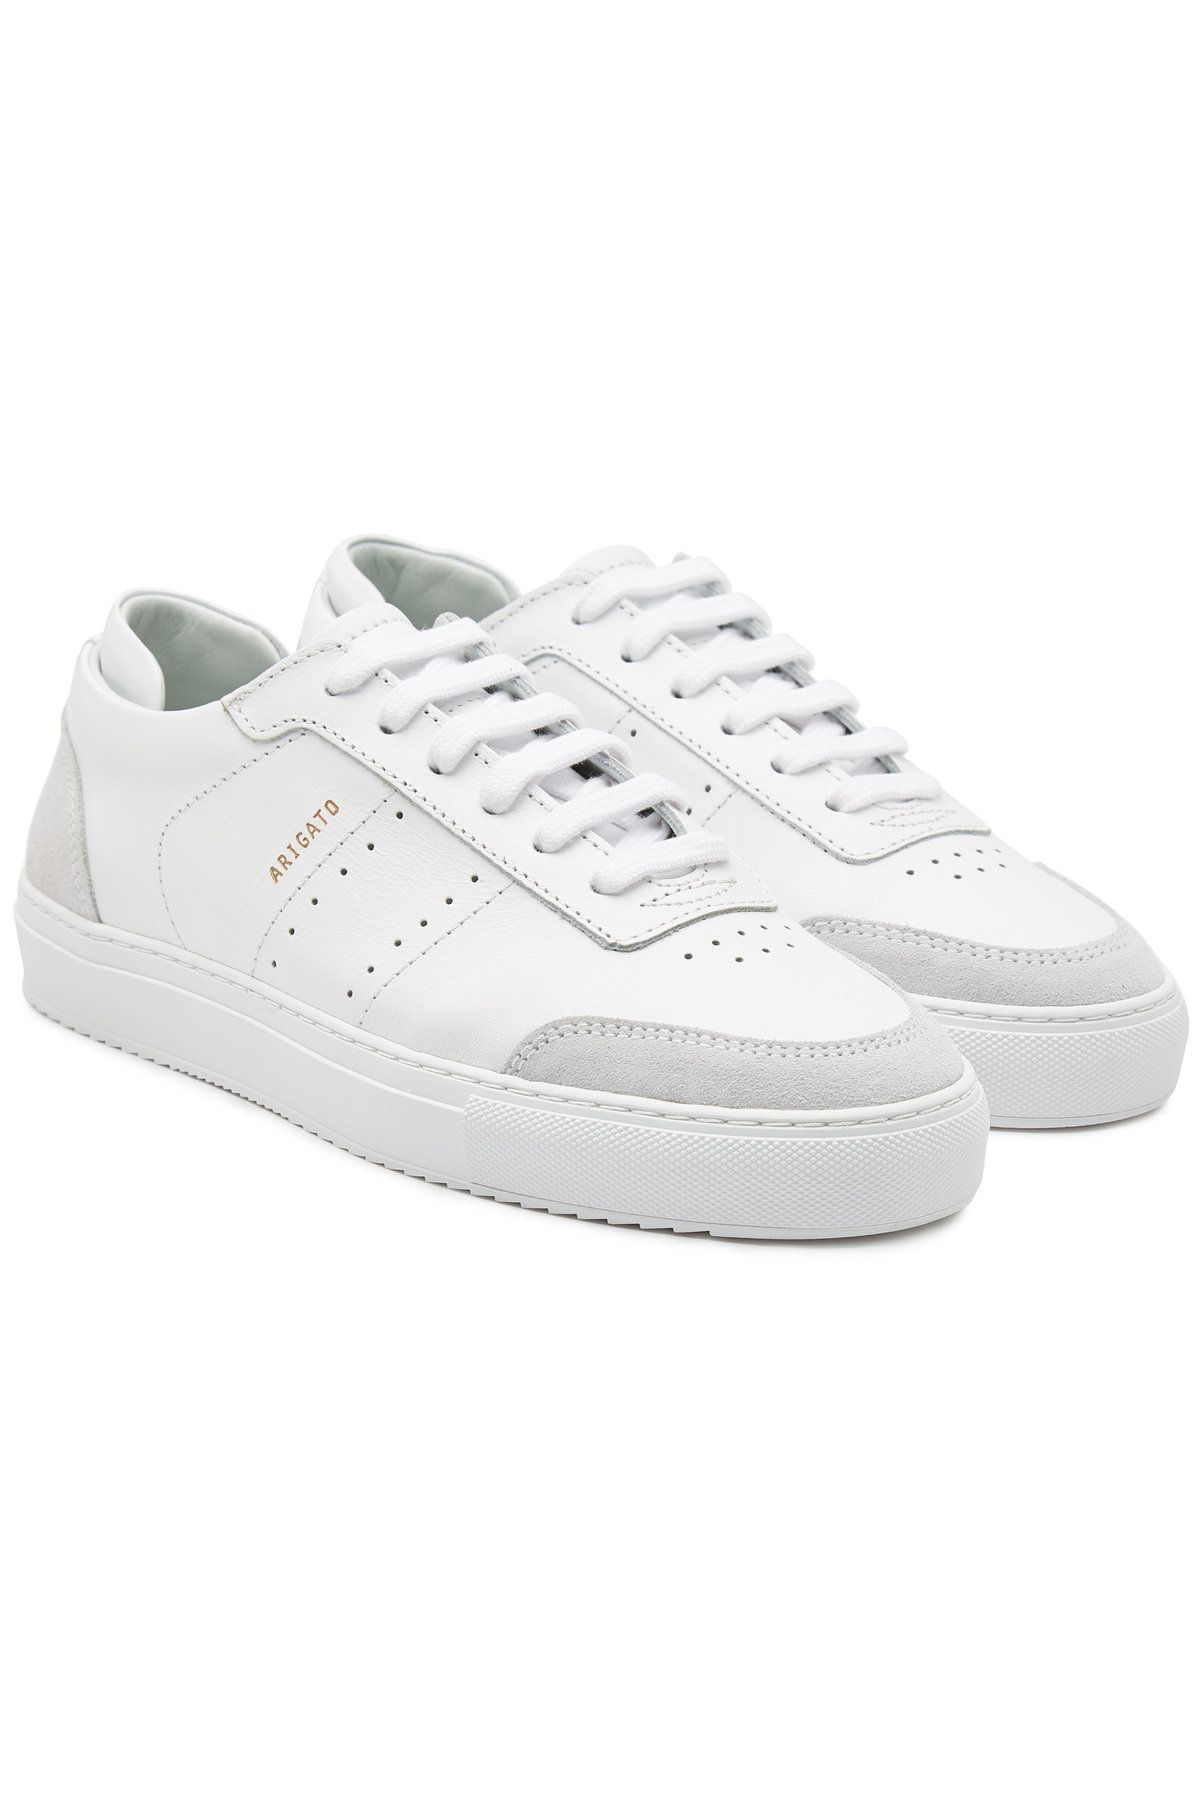 Axel Arigato Dunk Leather Sneakers In